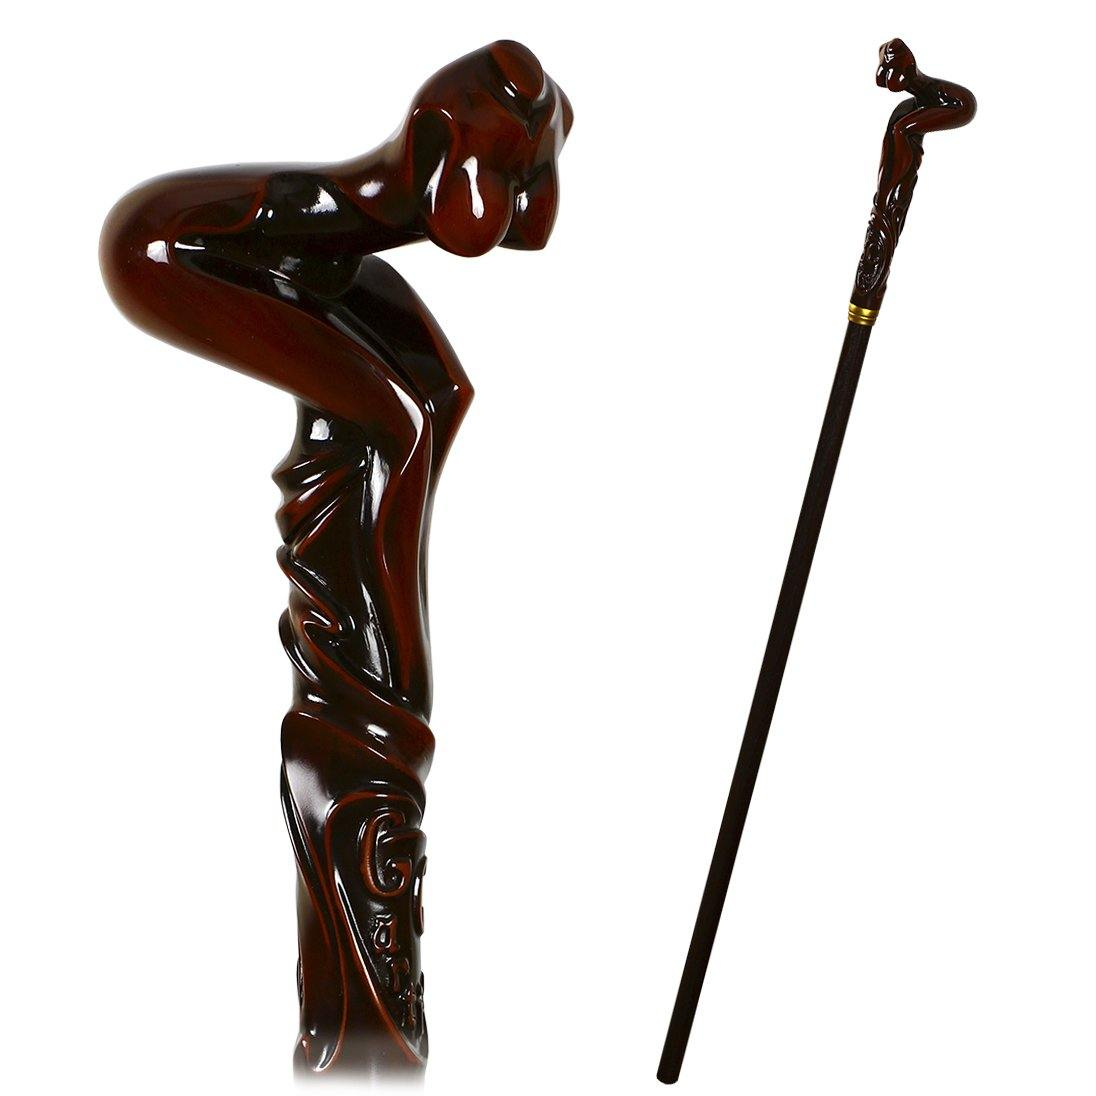 Naked Sexy Girl Erotic Cane Walking Stick - GC-Artis Walking Sticks Canes